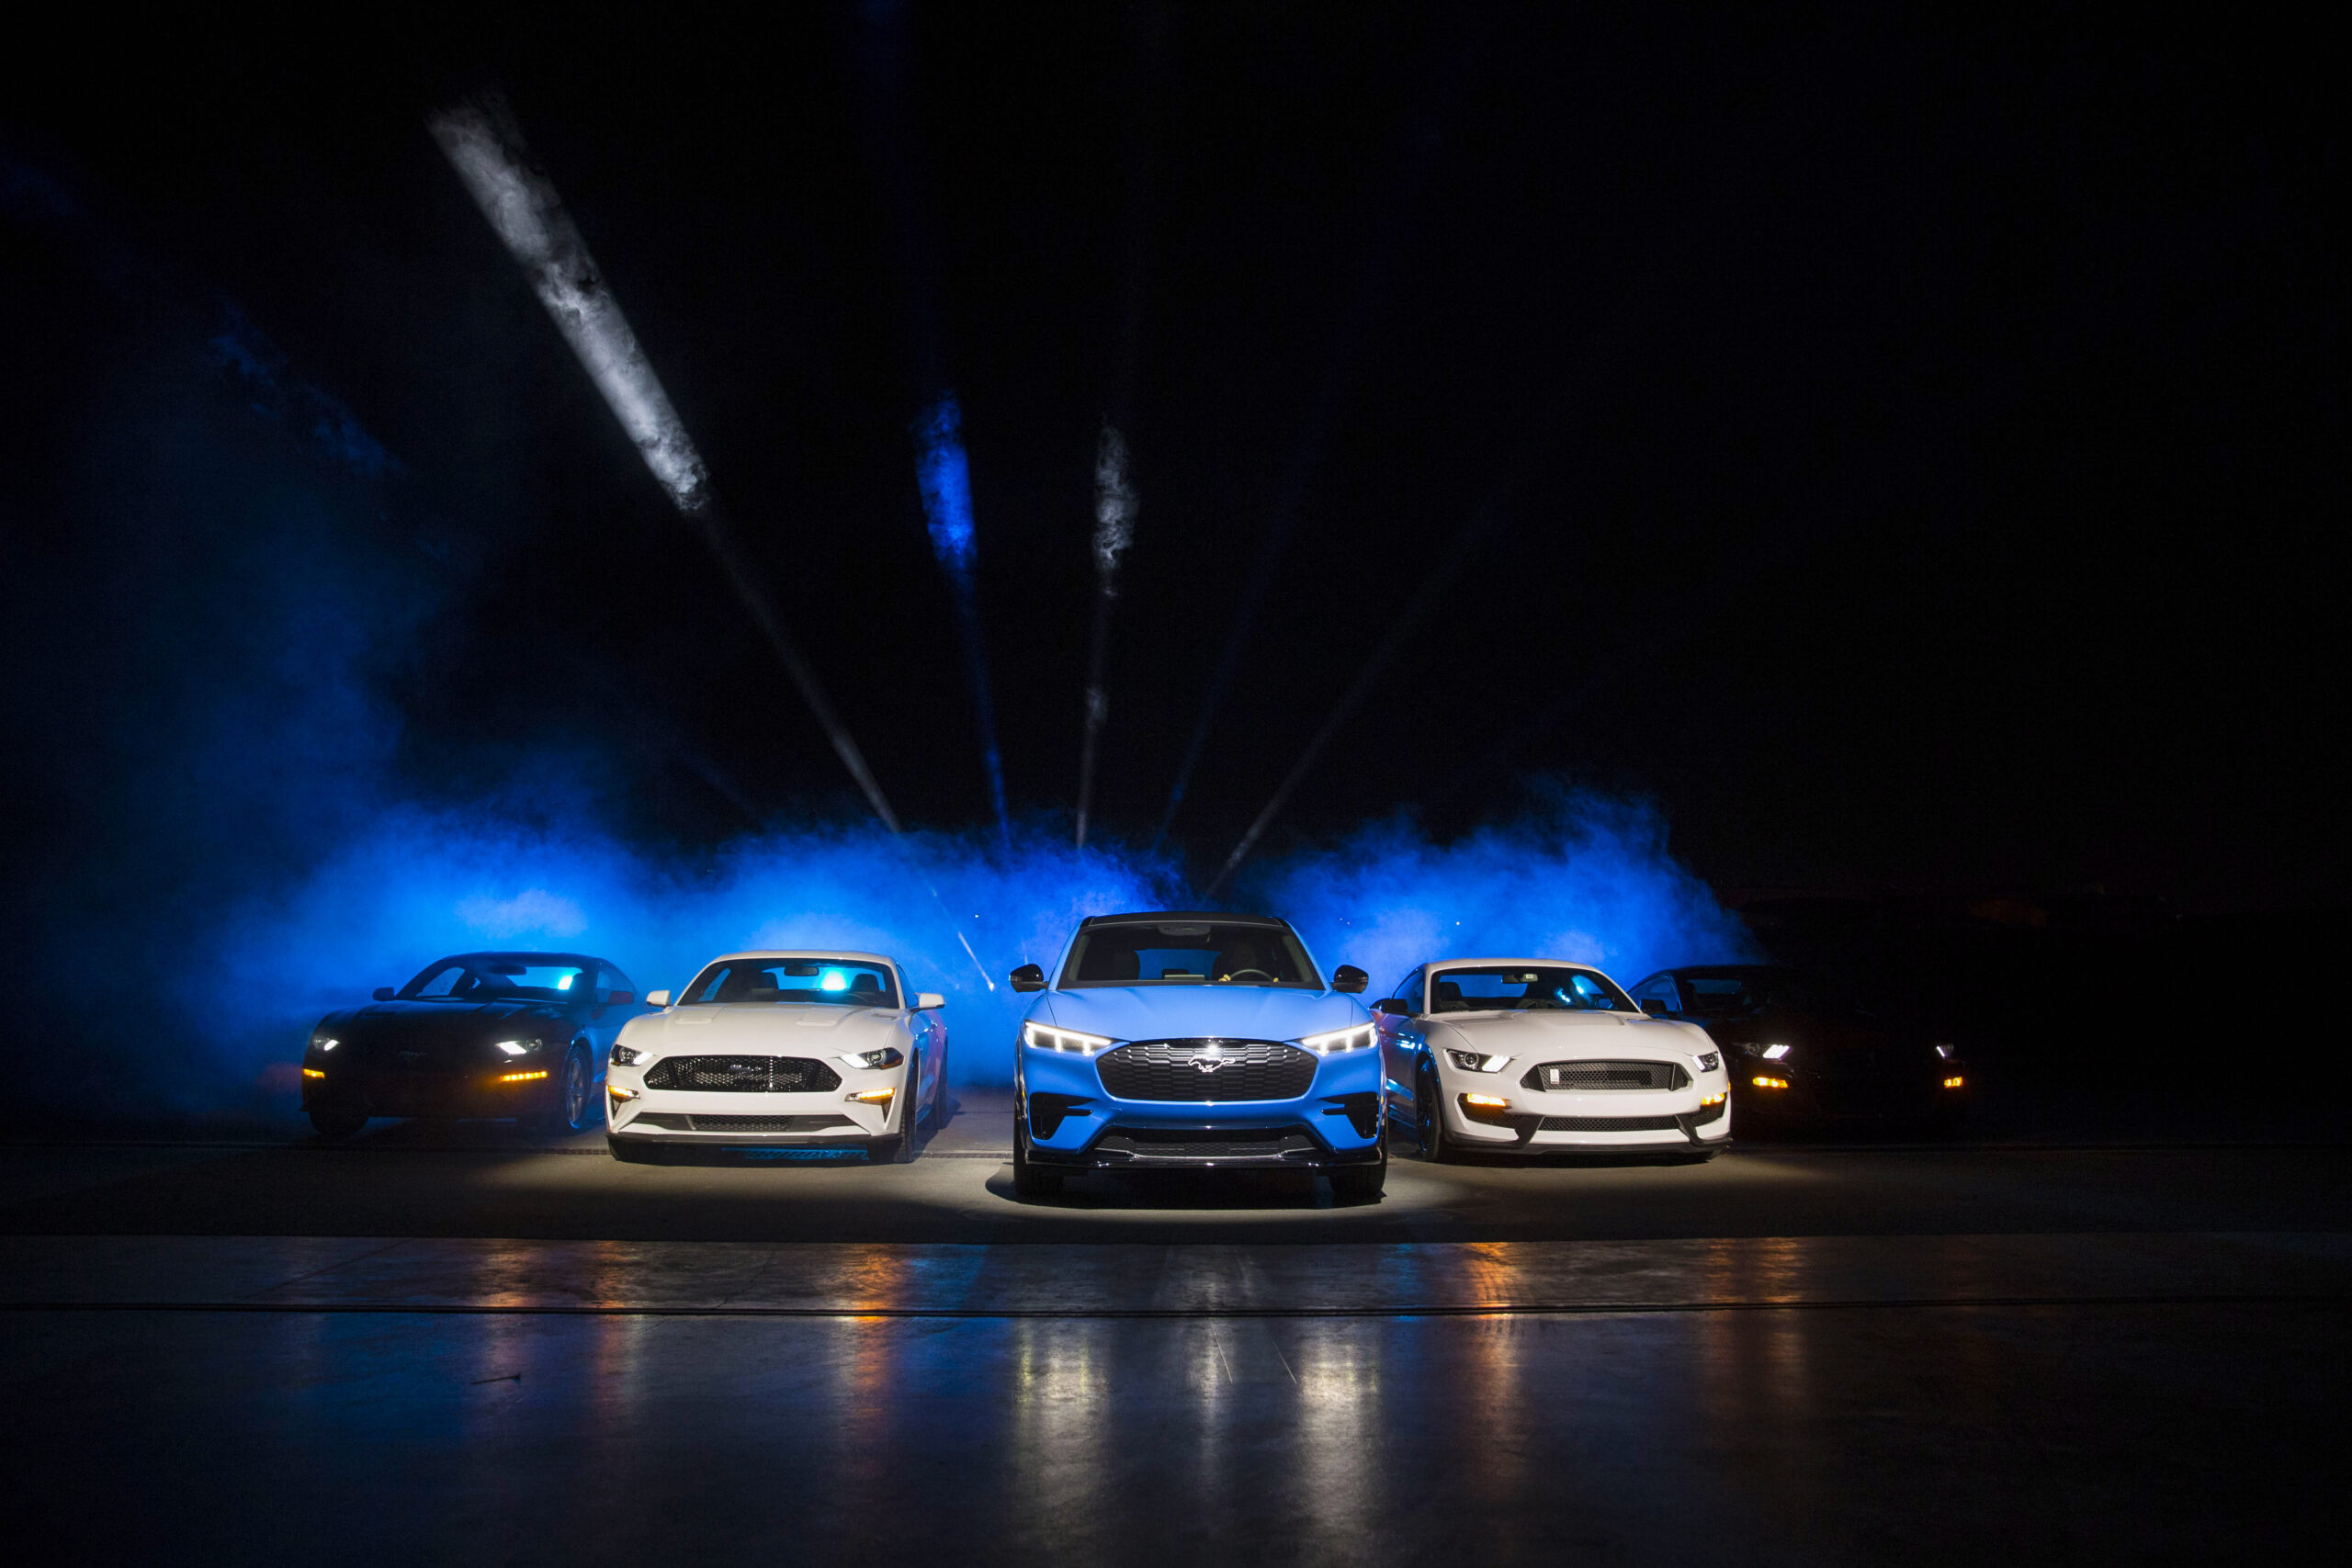 Ford Motor Company introduces the Mustang Mach-E GT SUV at Jet Center Los Angeles in Hawthorne, California on Sunday, Nov. 17, 2019. The GT Performance Edition brings the thrills Mustang is famous for, targeting 0-60 mph in the mid-3-second range and an estimated 342 kW (459 horsepower) and 830 Nm (612 lb.-ft.) of torque.